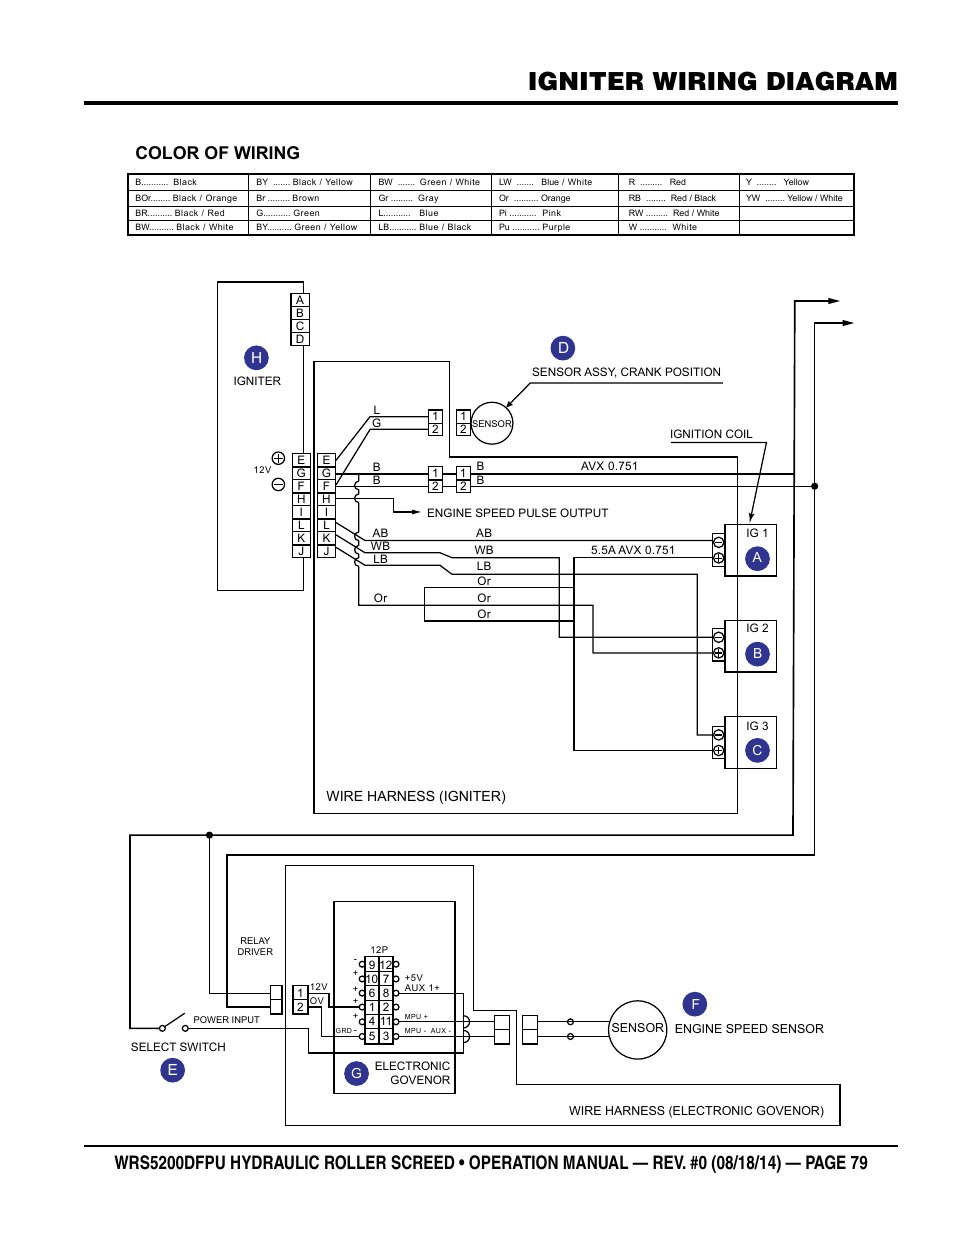 Igniter Wiring Diagram  Color Of Wiring  Hd E